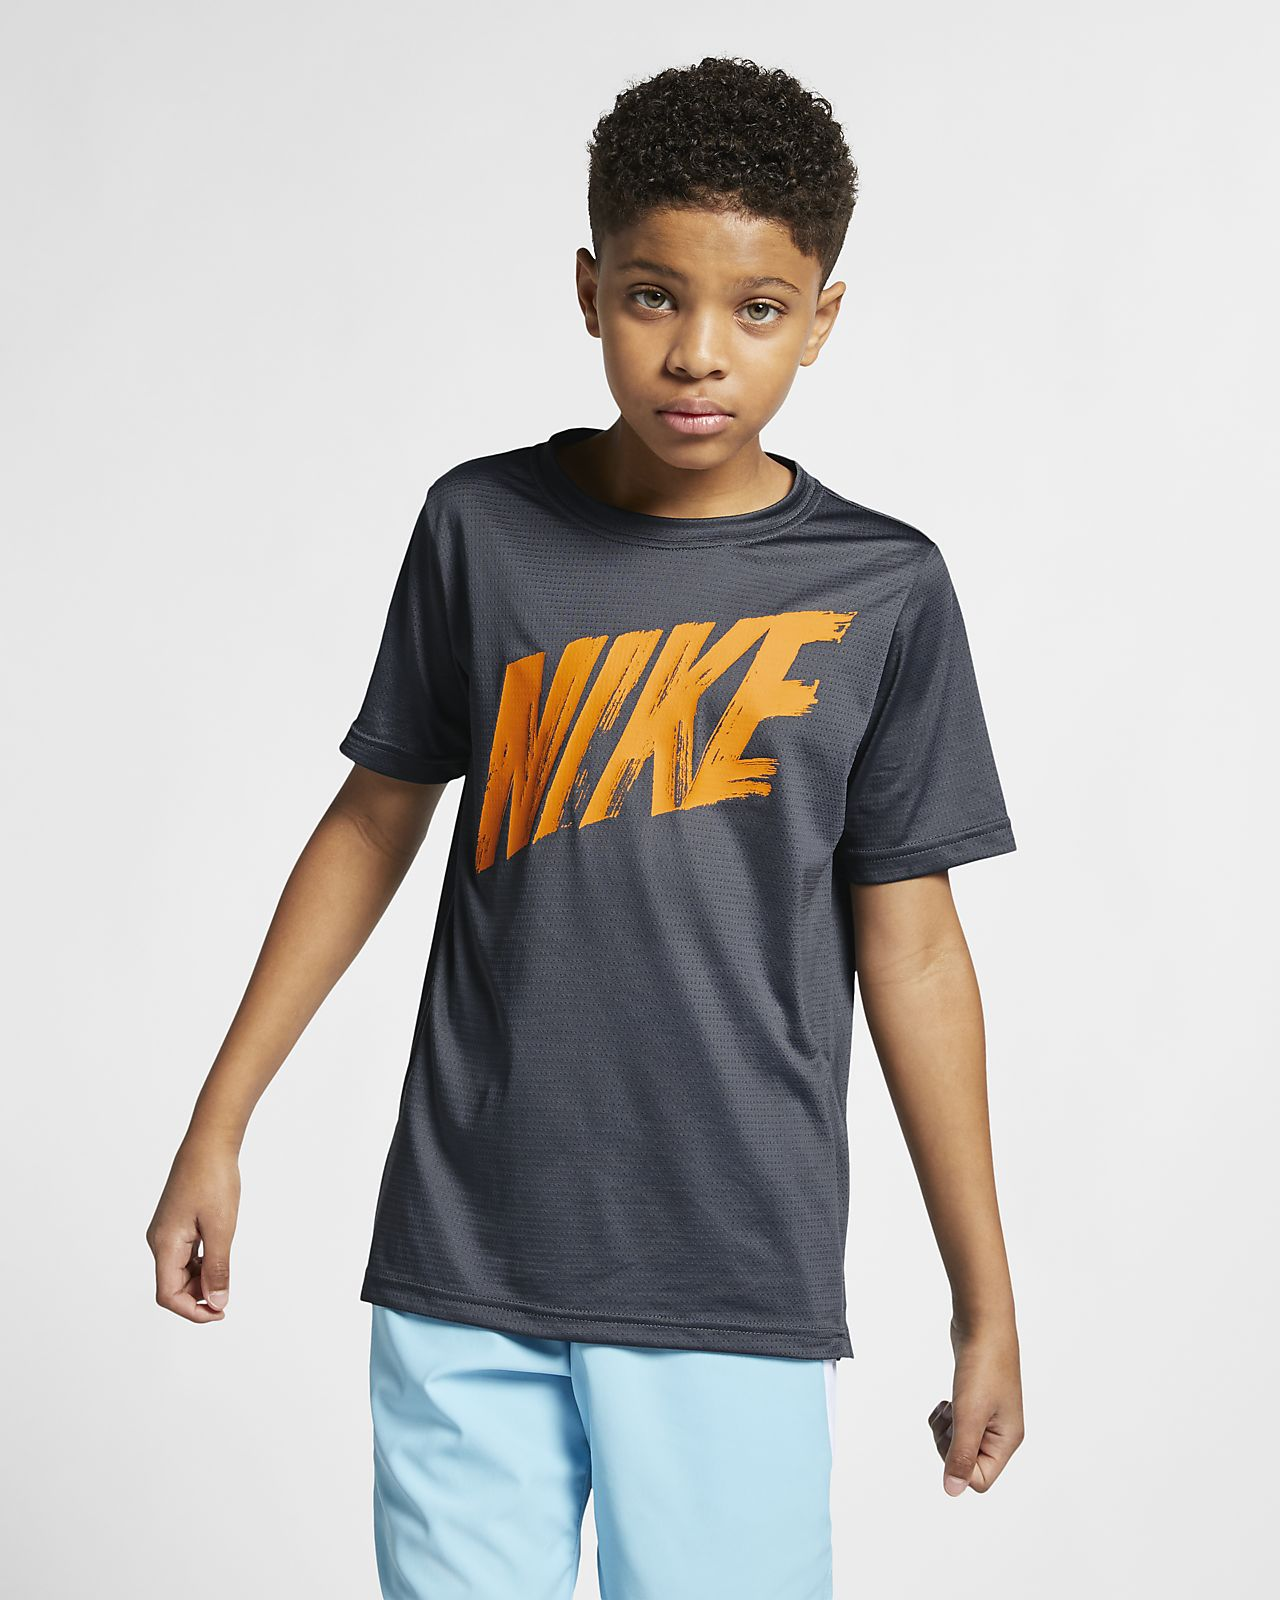 Nike Dri-FIT Older Kids' (Boys') Short-Sleeve Training Top